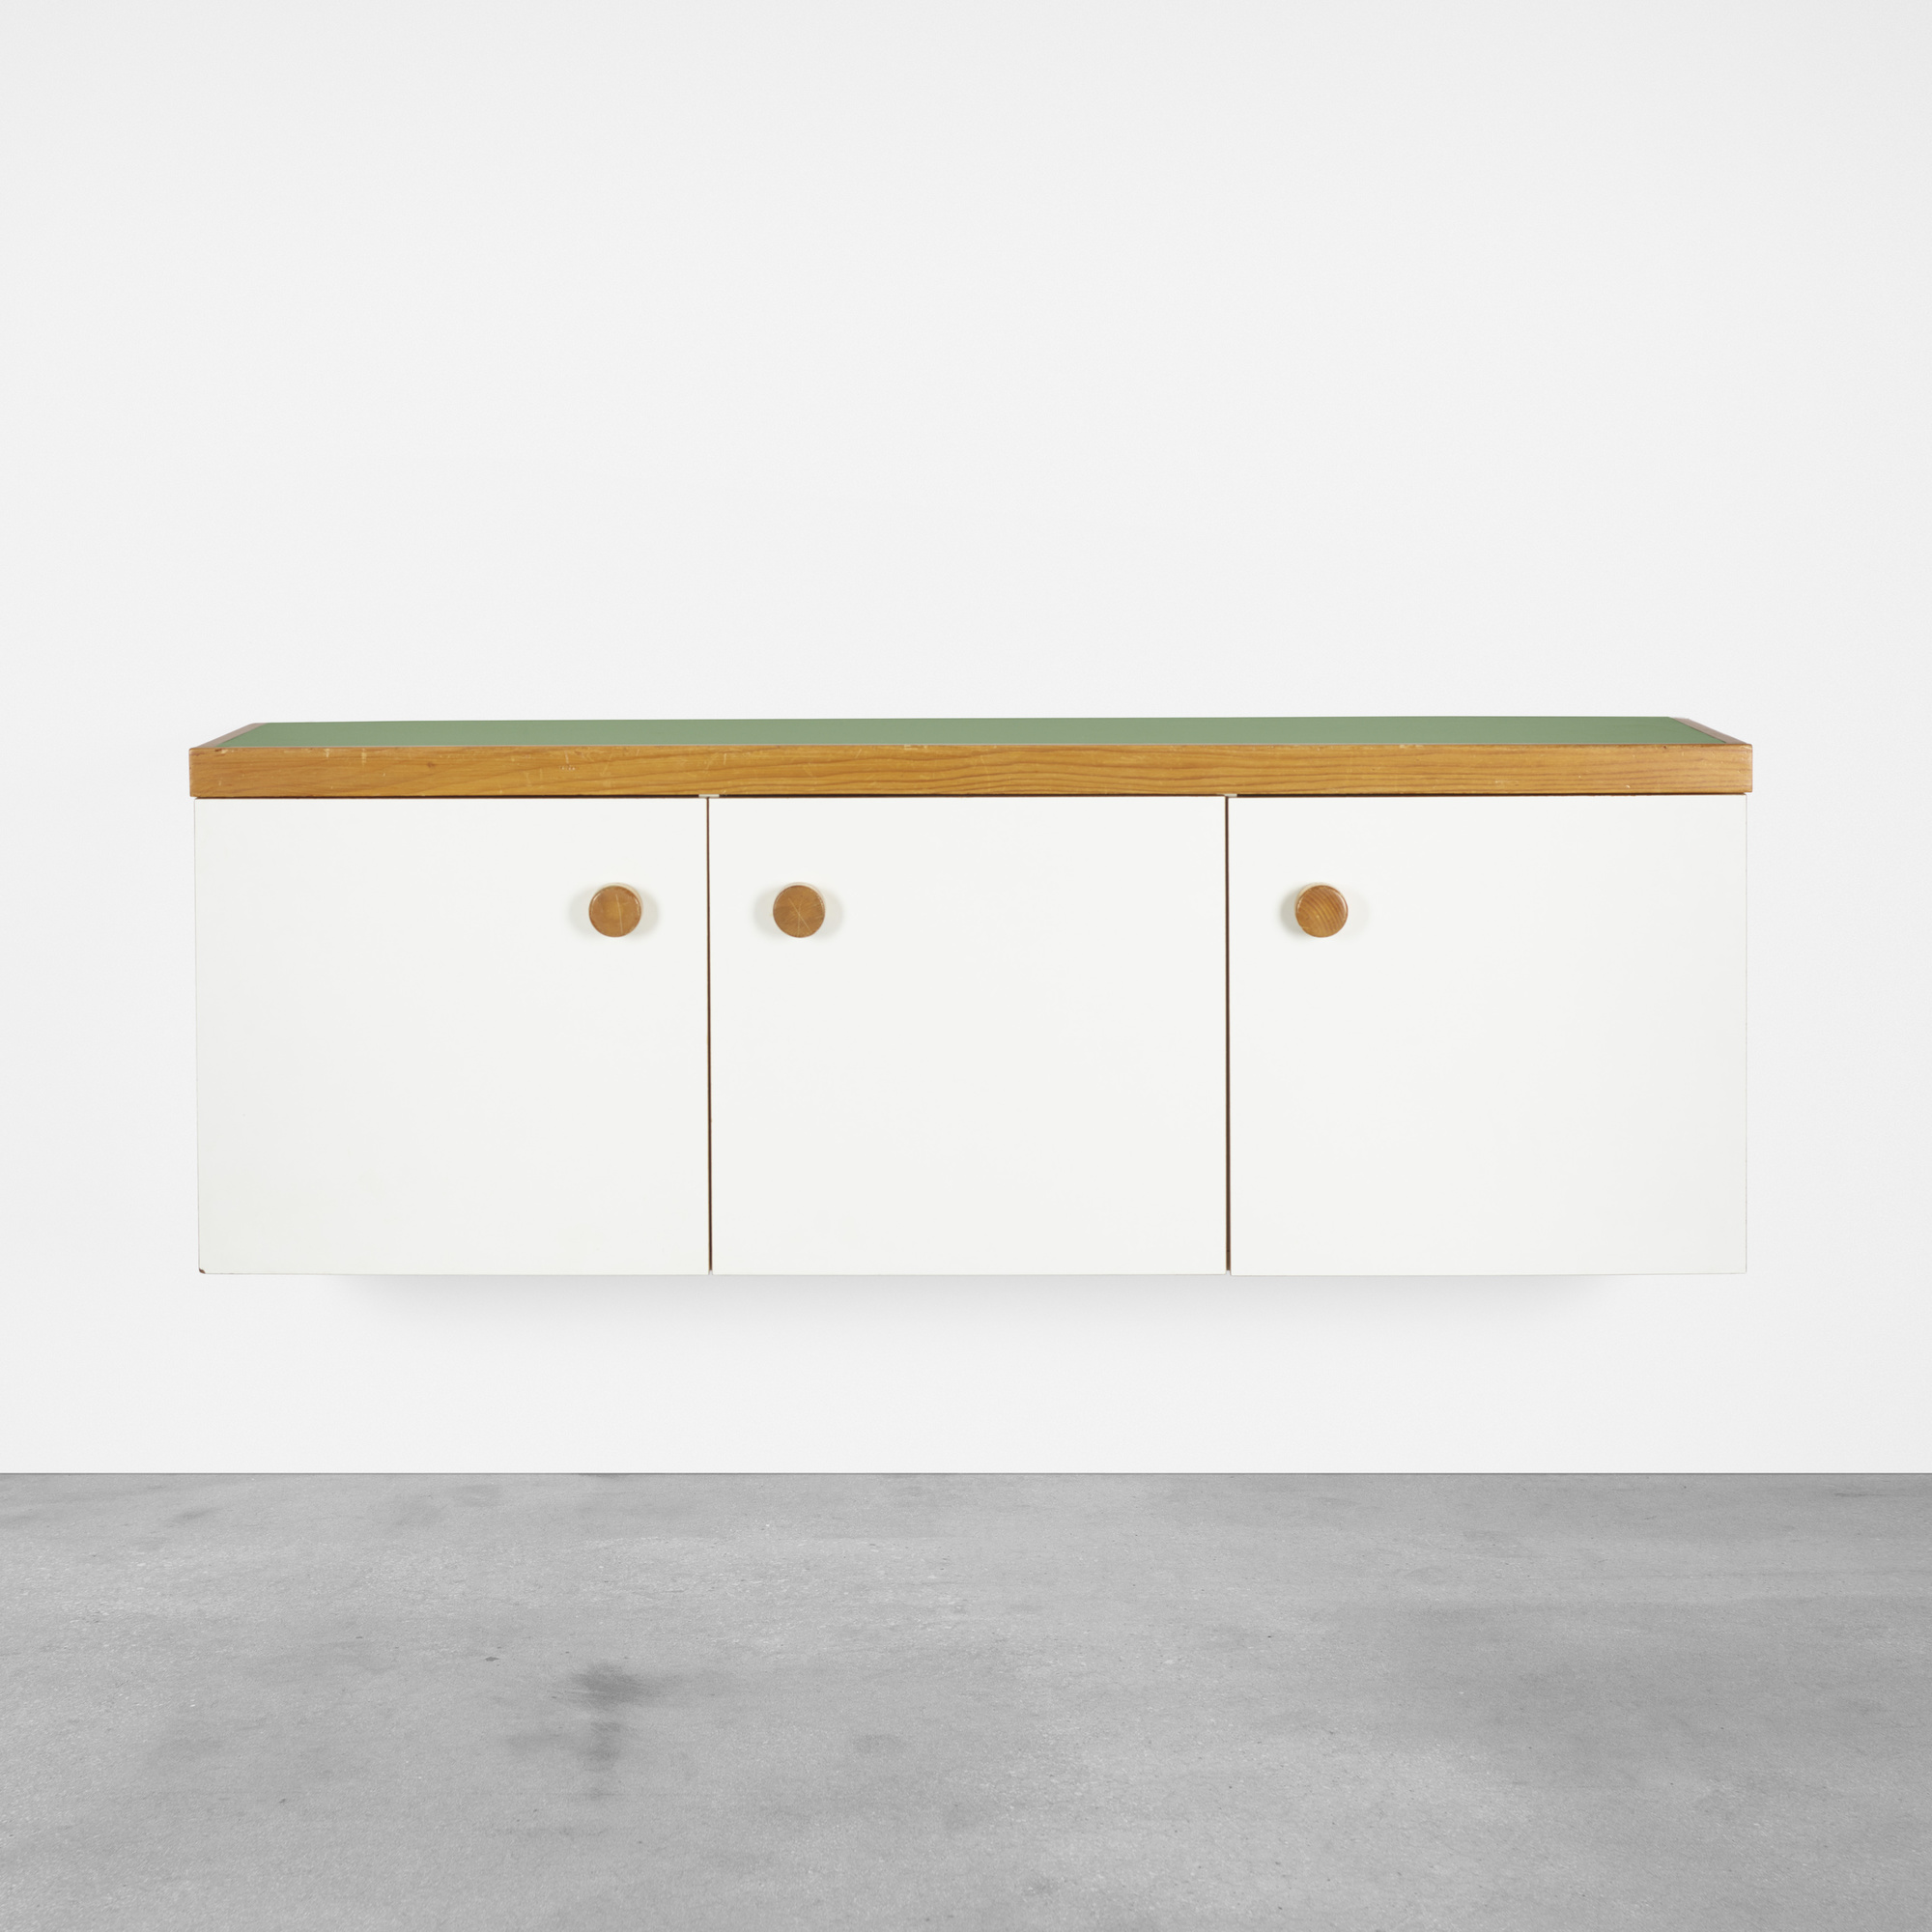 128: Charlotte Perriand / wall-mounted cabinet from Les Arcs (1 of 3)